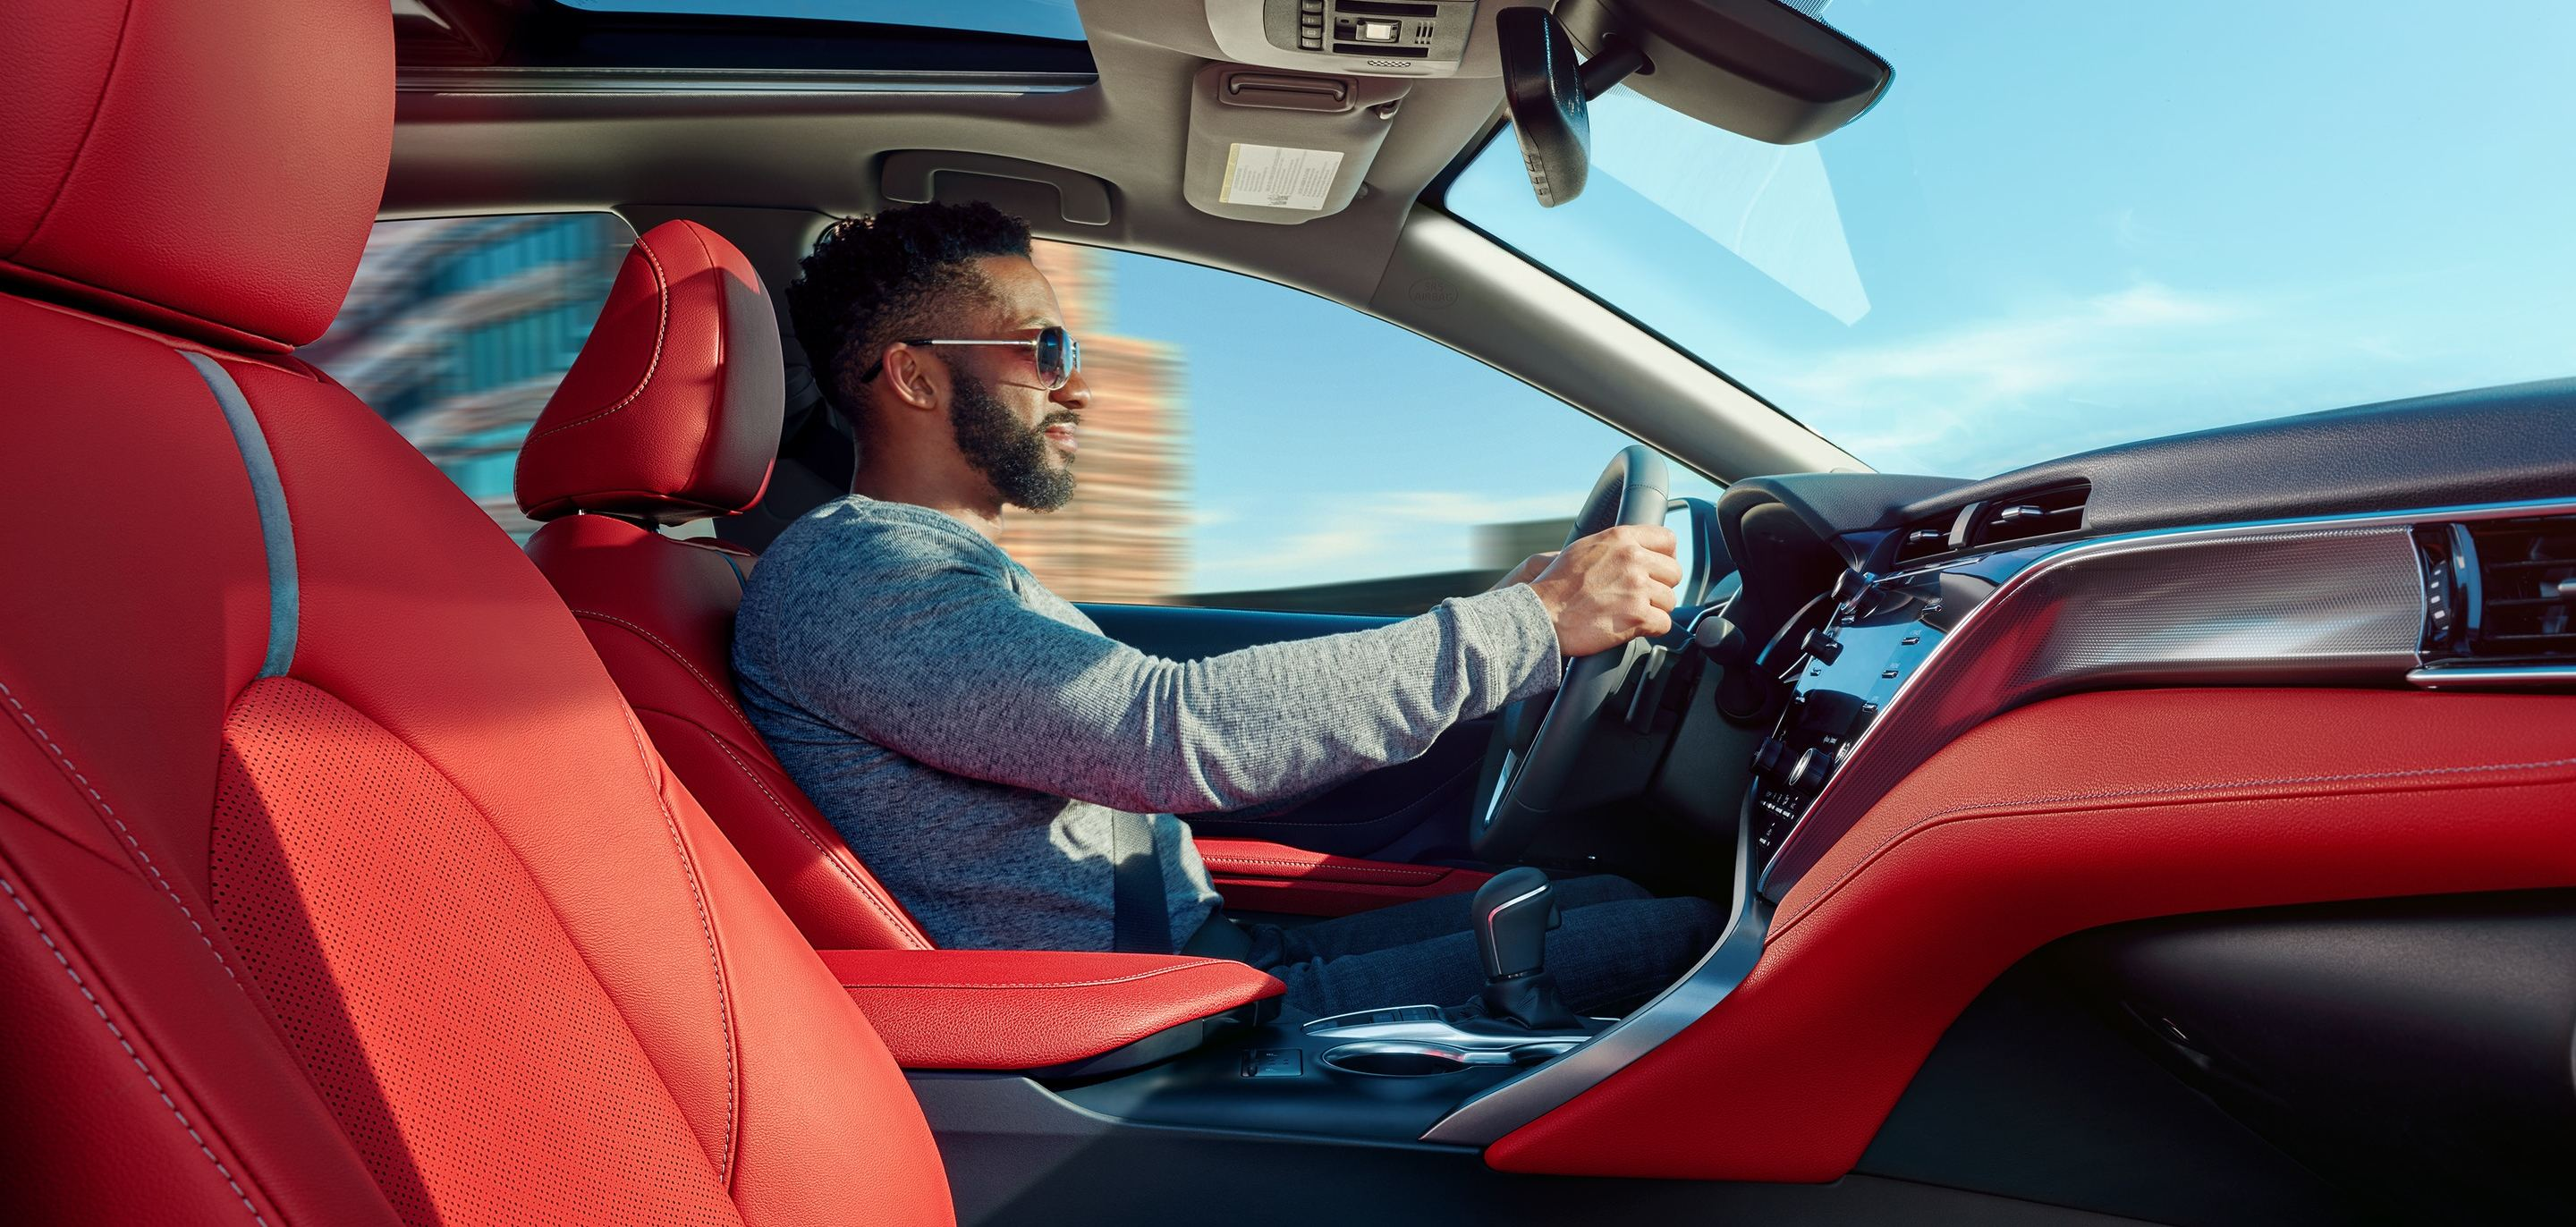 The 2019 Camry's Sporty Interior Design